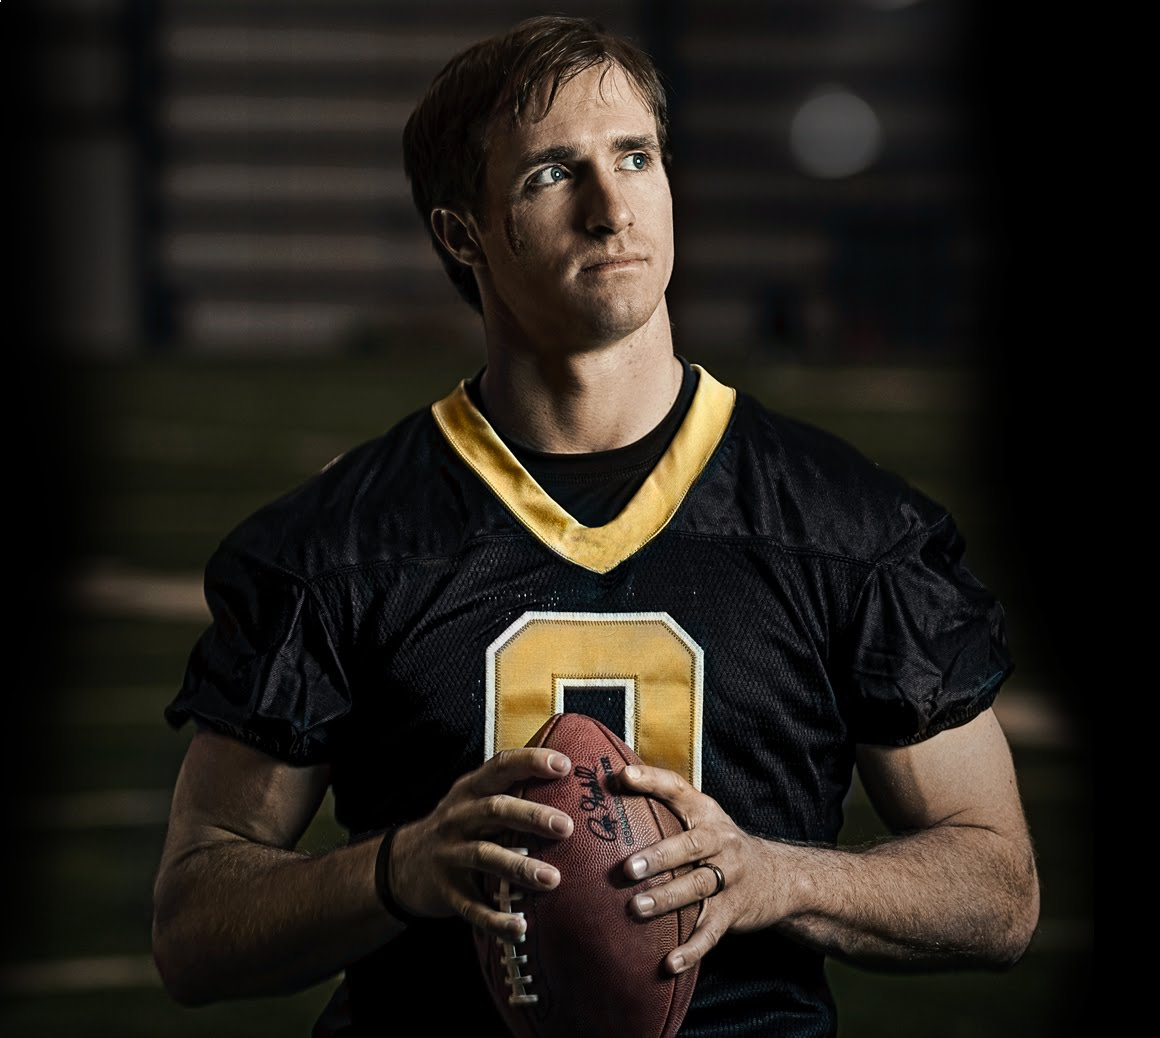 Drew Brees Bulge Would Rather See Drew Brees